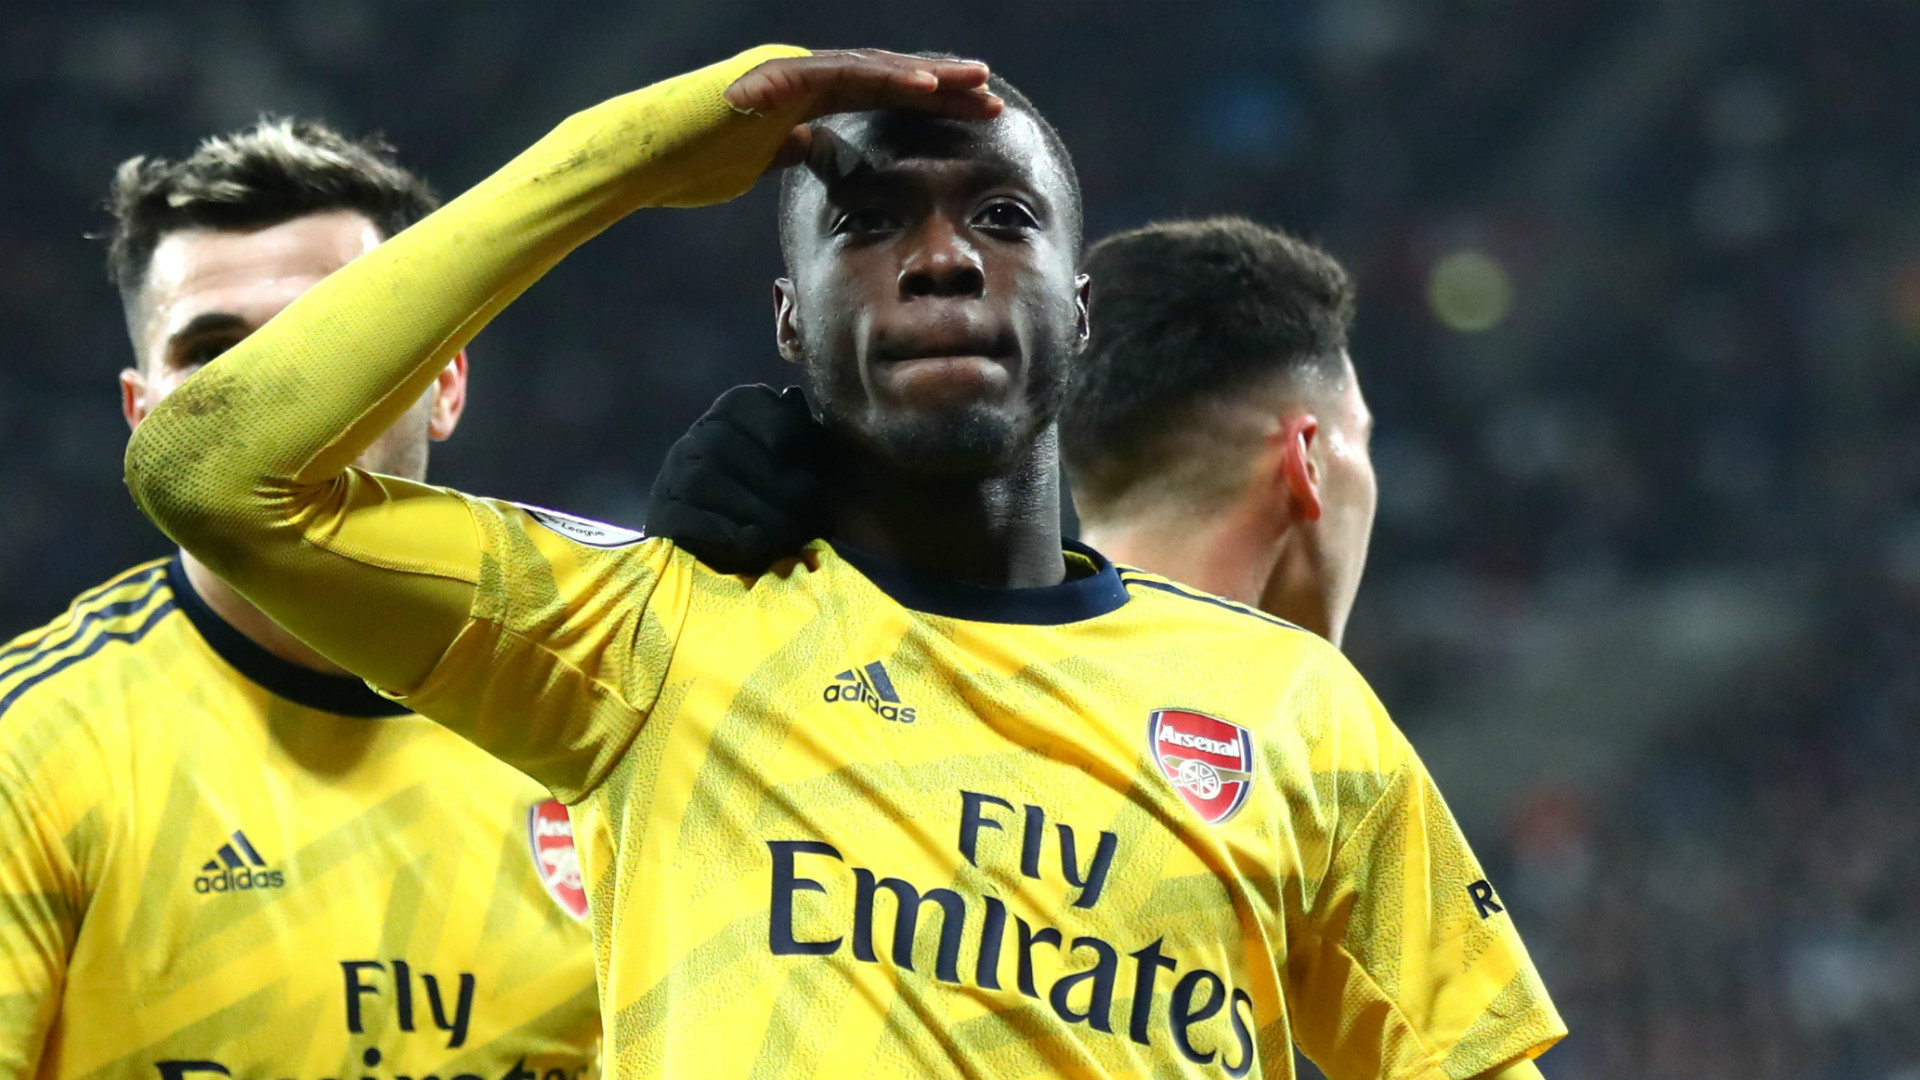 'There are encouraging signs of Arsenal under Arteta' - Nicolas Pepe